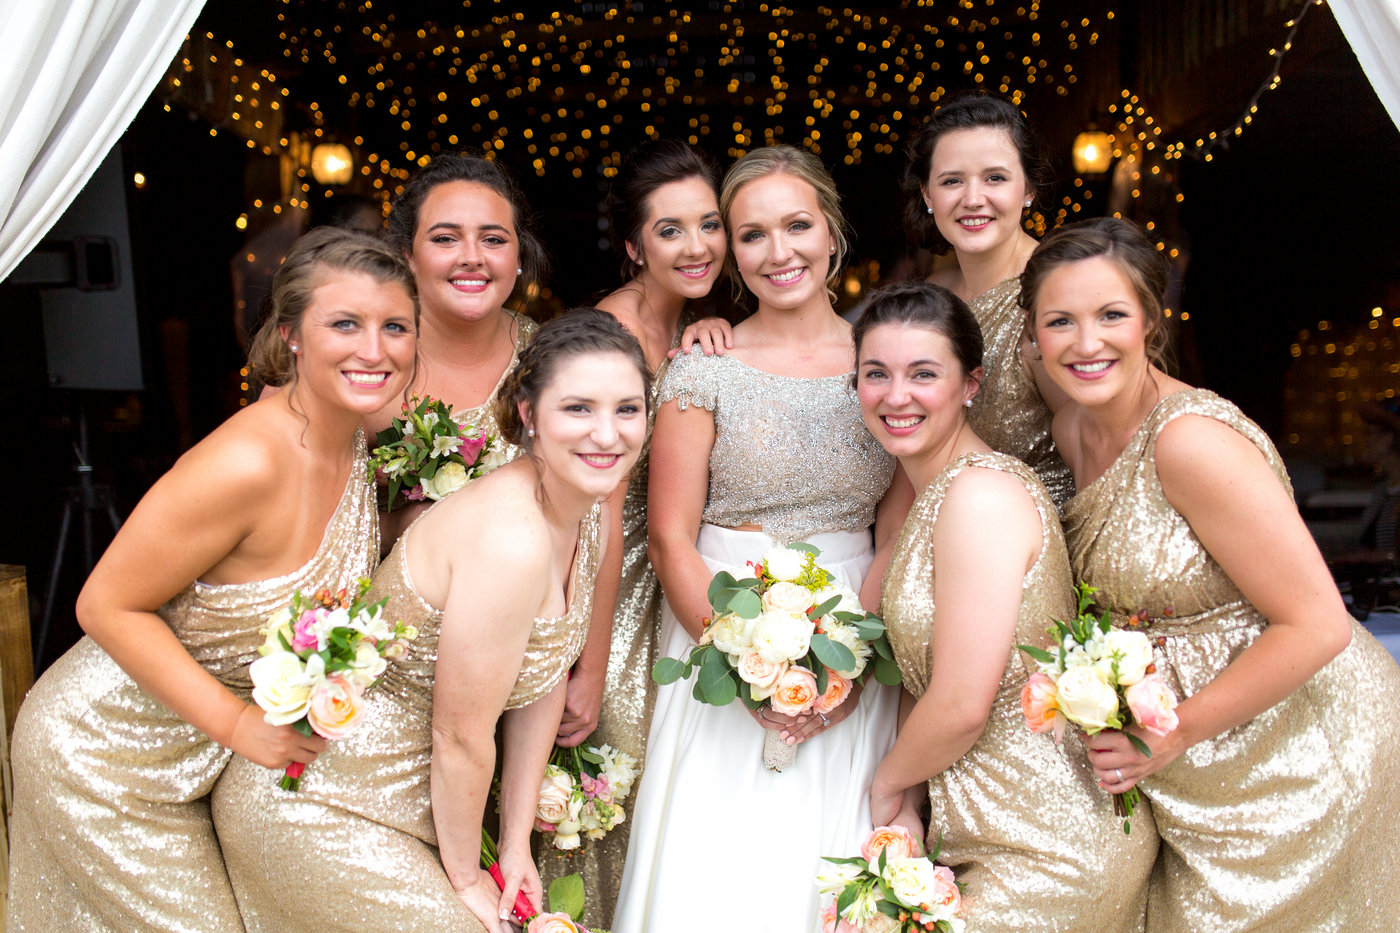 Bride poses with bridesmaids in Ivory Gold Sequin Starla Dresses